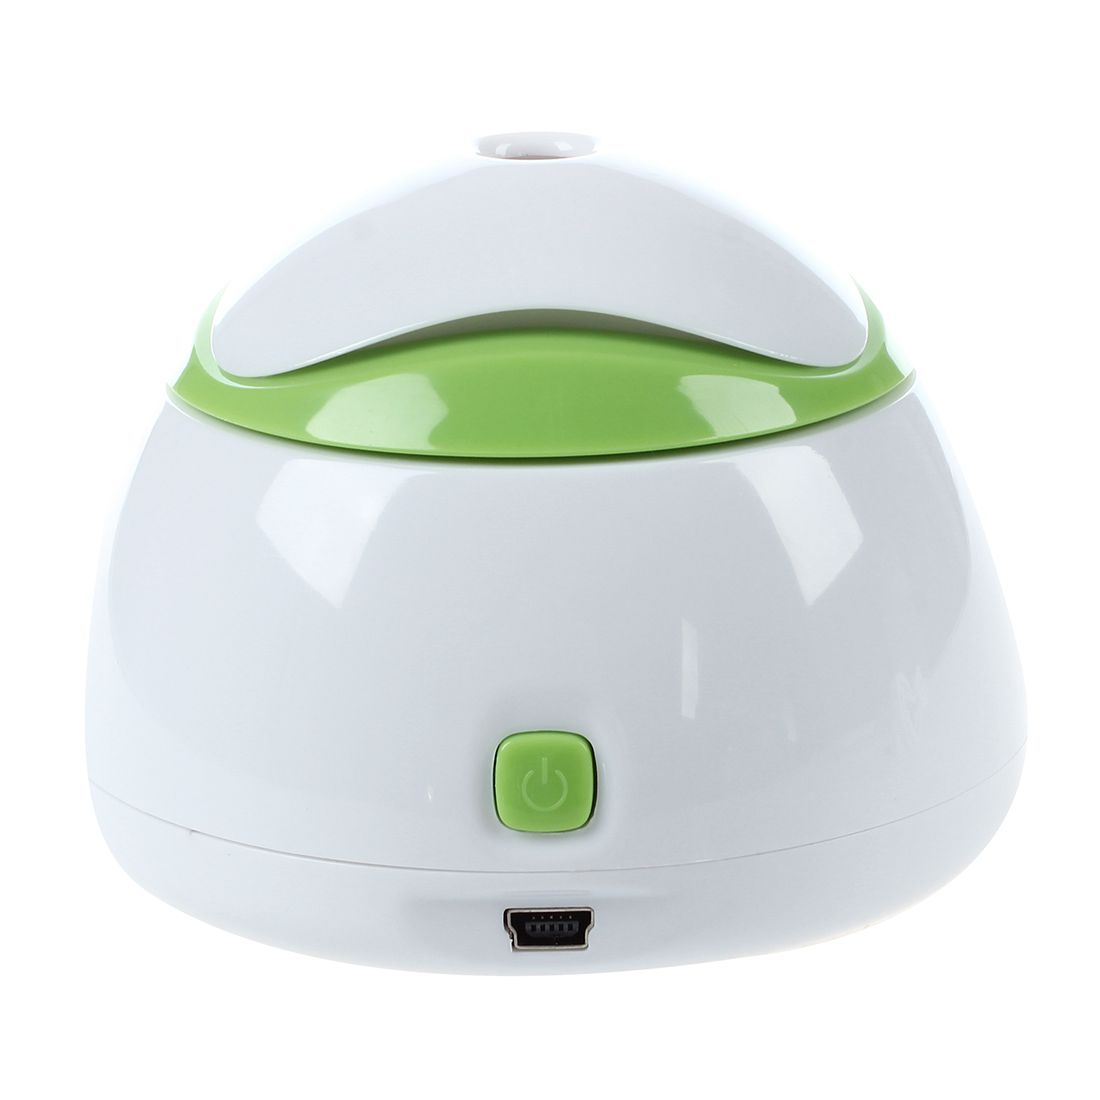 1PC Mini USB Humidifier Air Purifier Aroma Diffuser Mist Home Room Office Fresh Air compact usb humidifier air purifier aroma diffuser white green